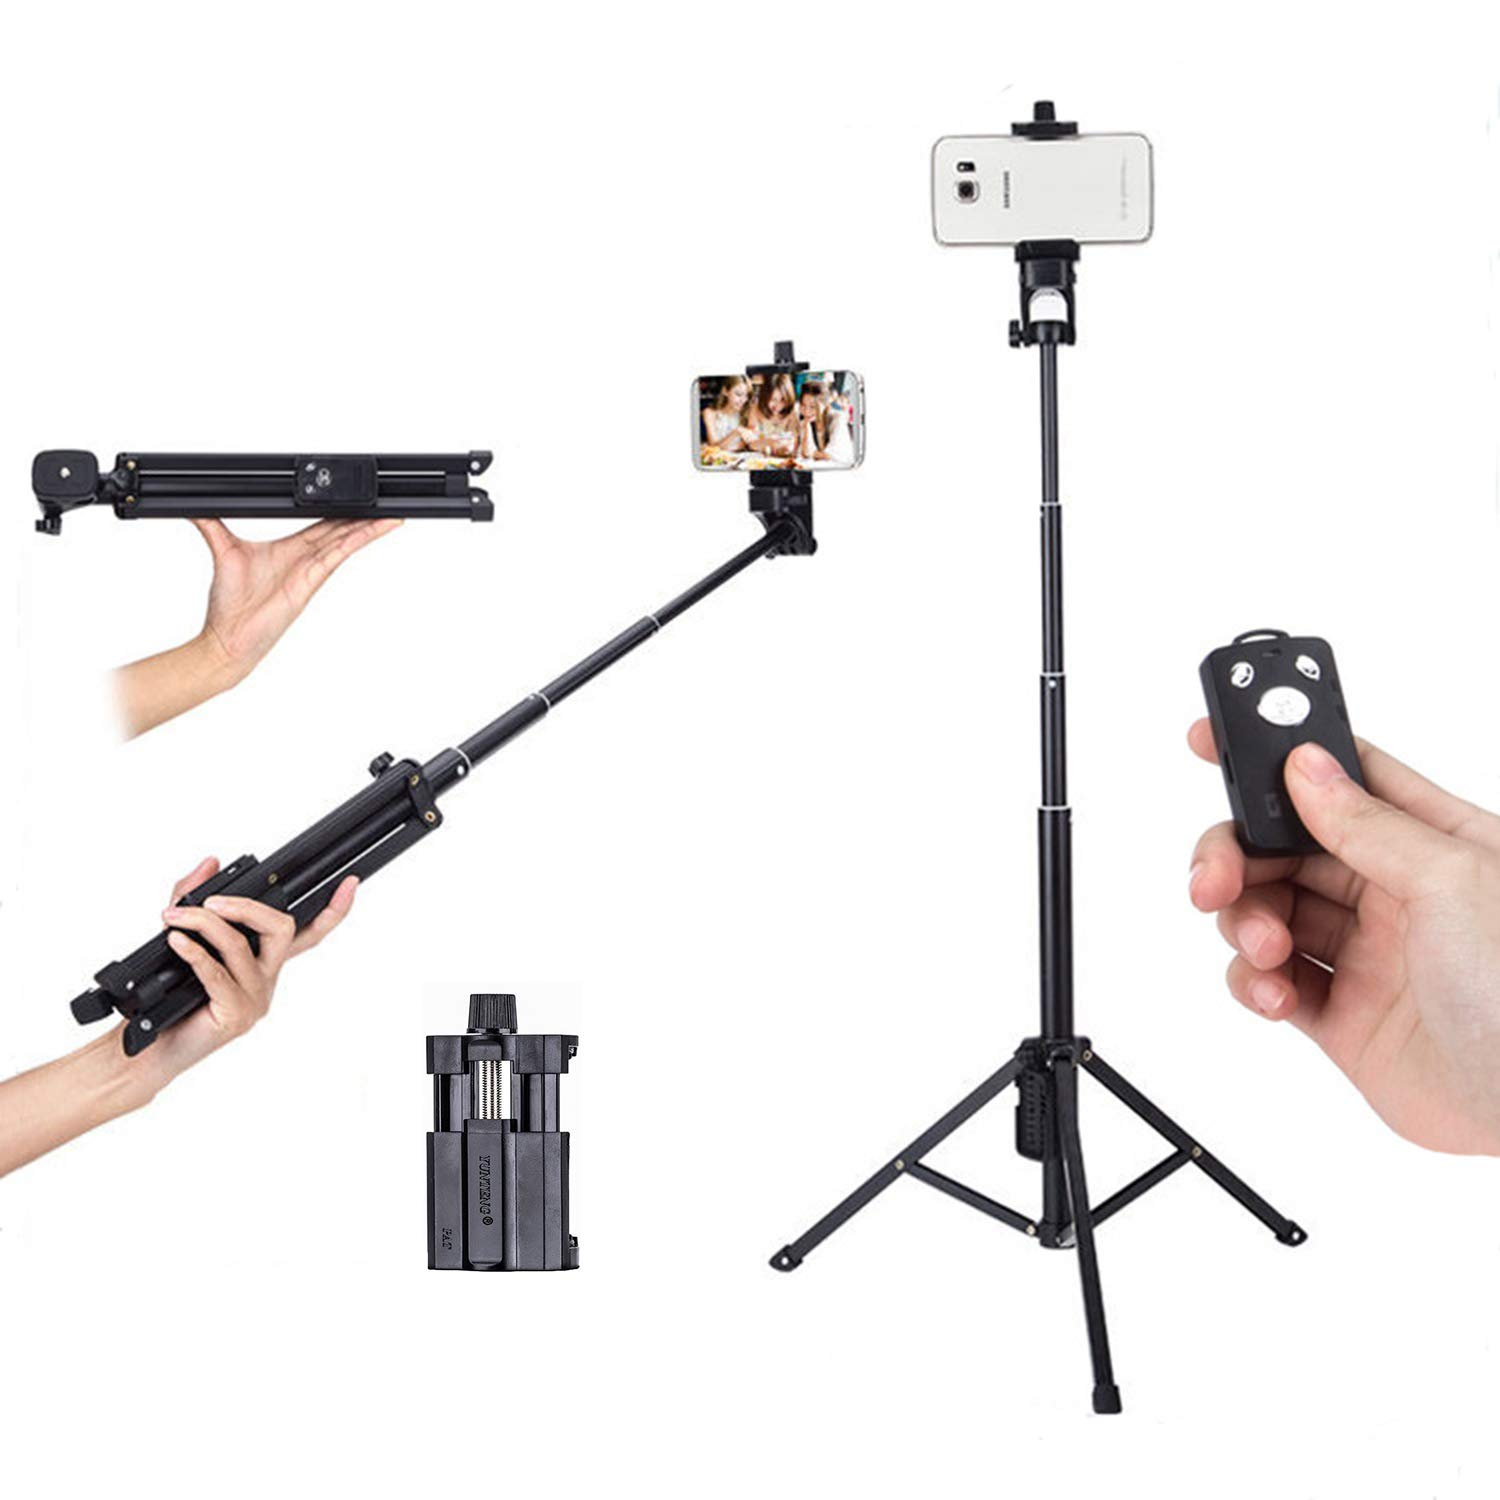 Bluetooth Selfie Sticks & Cell Phone Tripods Premium Selfie Stick Tripod with Detachable Remote & Storage bag Extendable Monopod for iPhone X/XS Max/XR/8 Plus/7/6S Plus, Galaxy S9/S9 Plus/S8,GoPro & A by MMGN